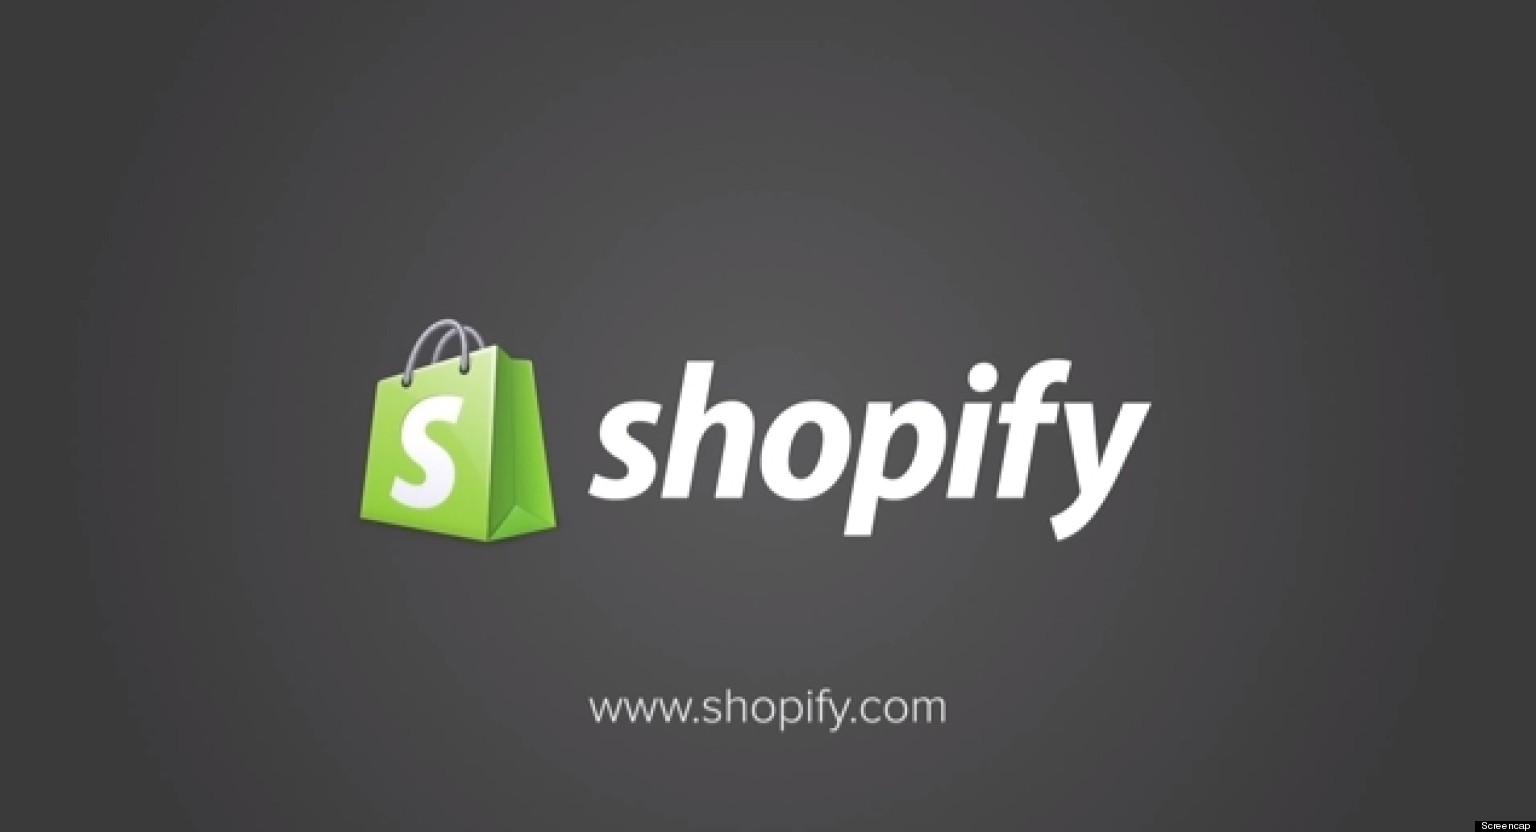 Shopify ipo stock symbol